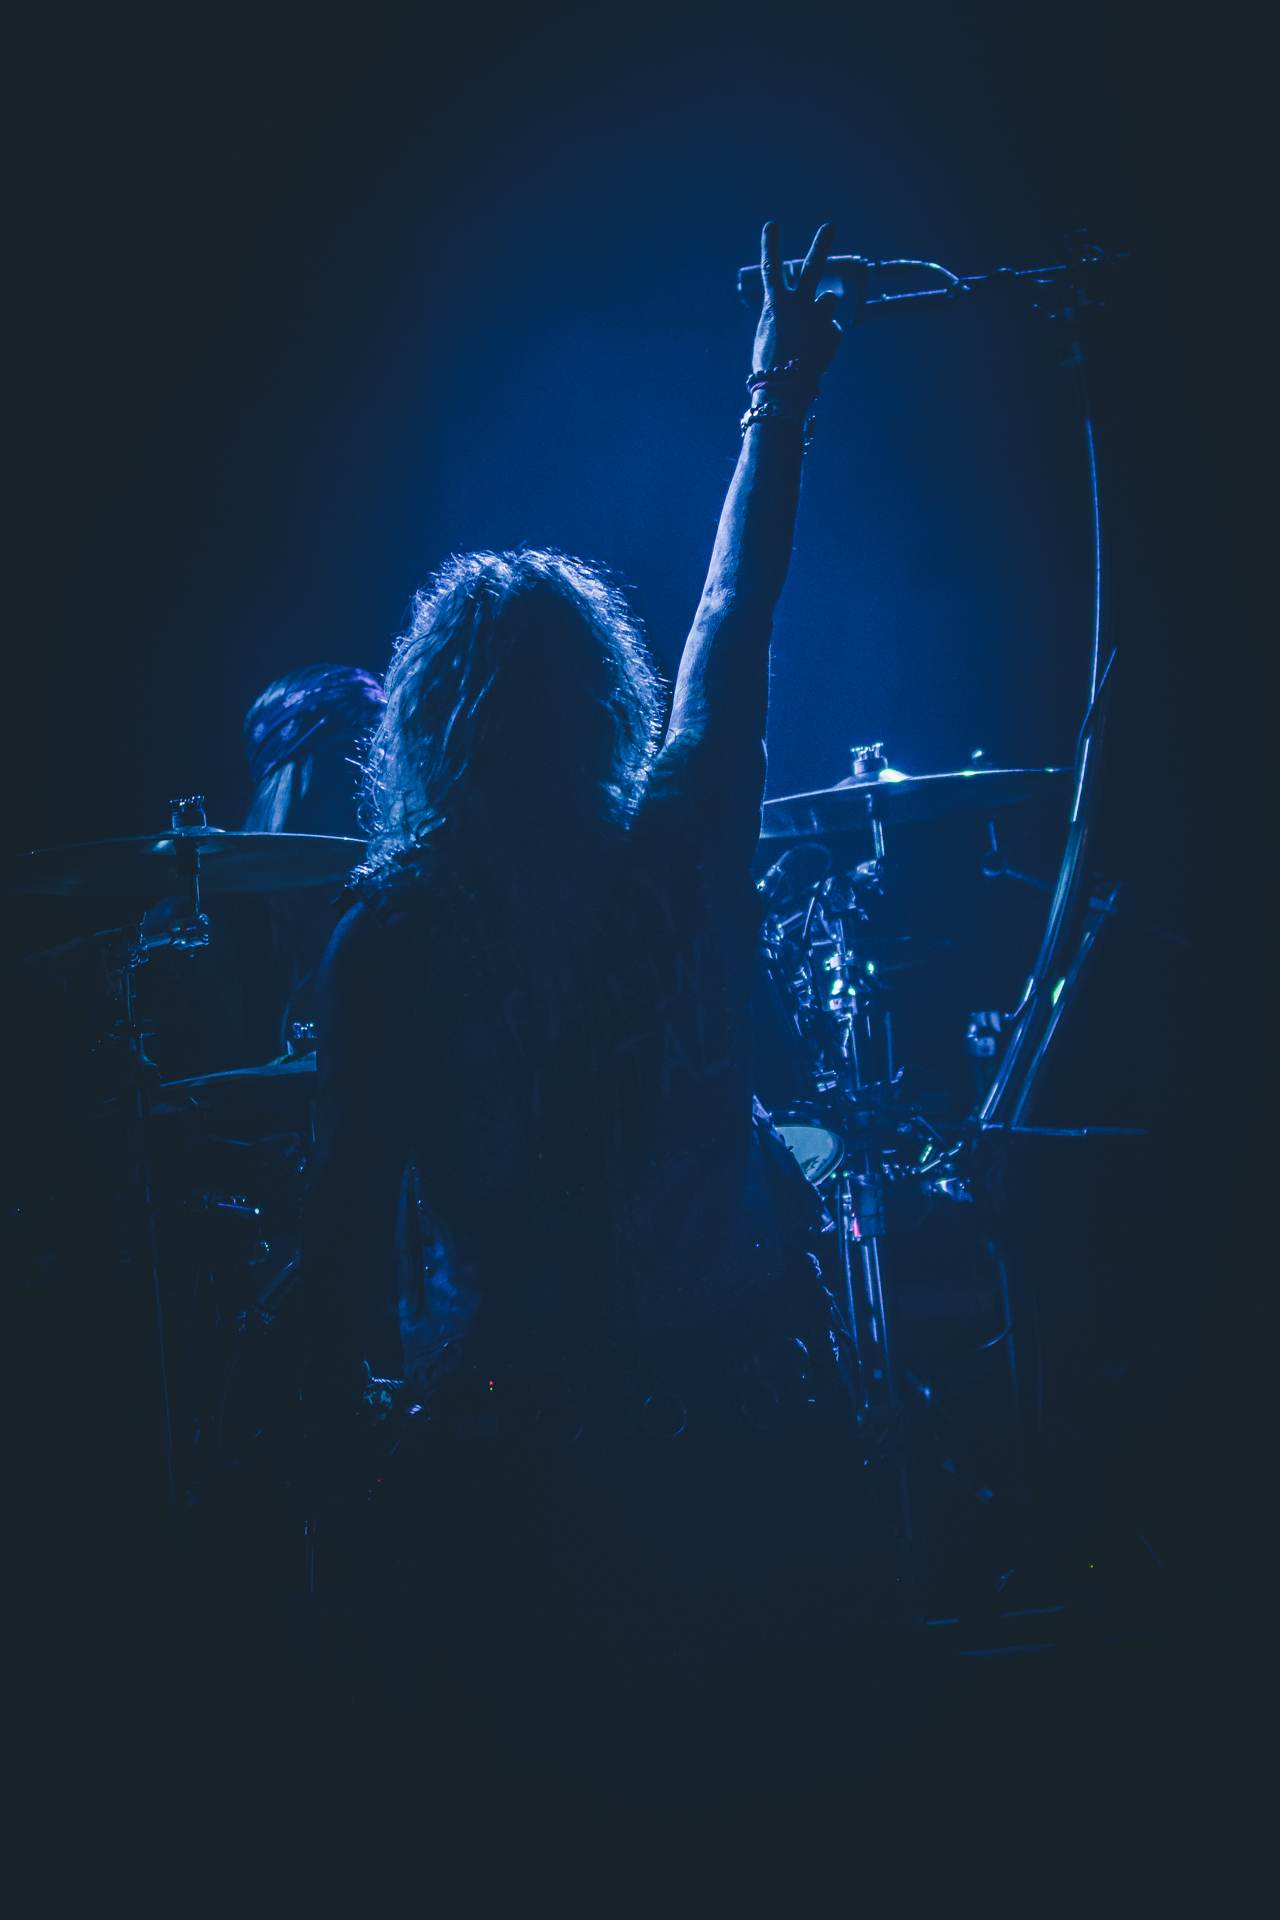 A blue tinted shot of Michael Starr (lead singer of Steel Panther) back to the camera, fingers raised in a Victory Salute facing Stix Zadinia (the Steel Panther drummer) whilst on stage in Birmingham UK in February 2020.